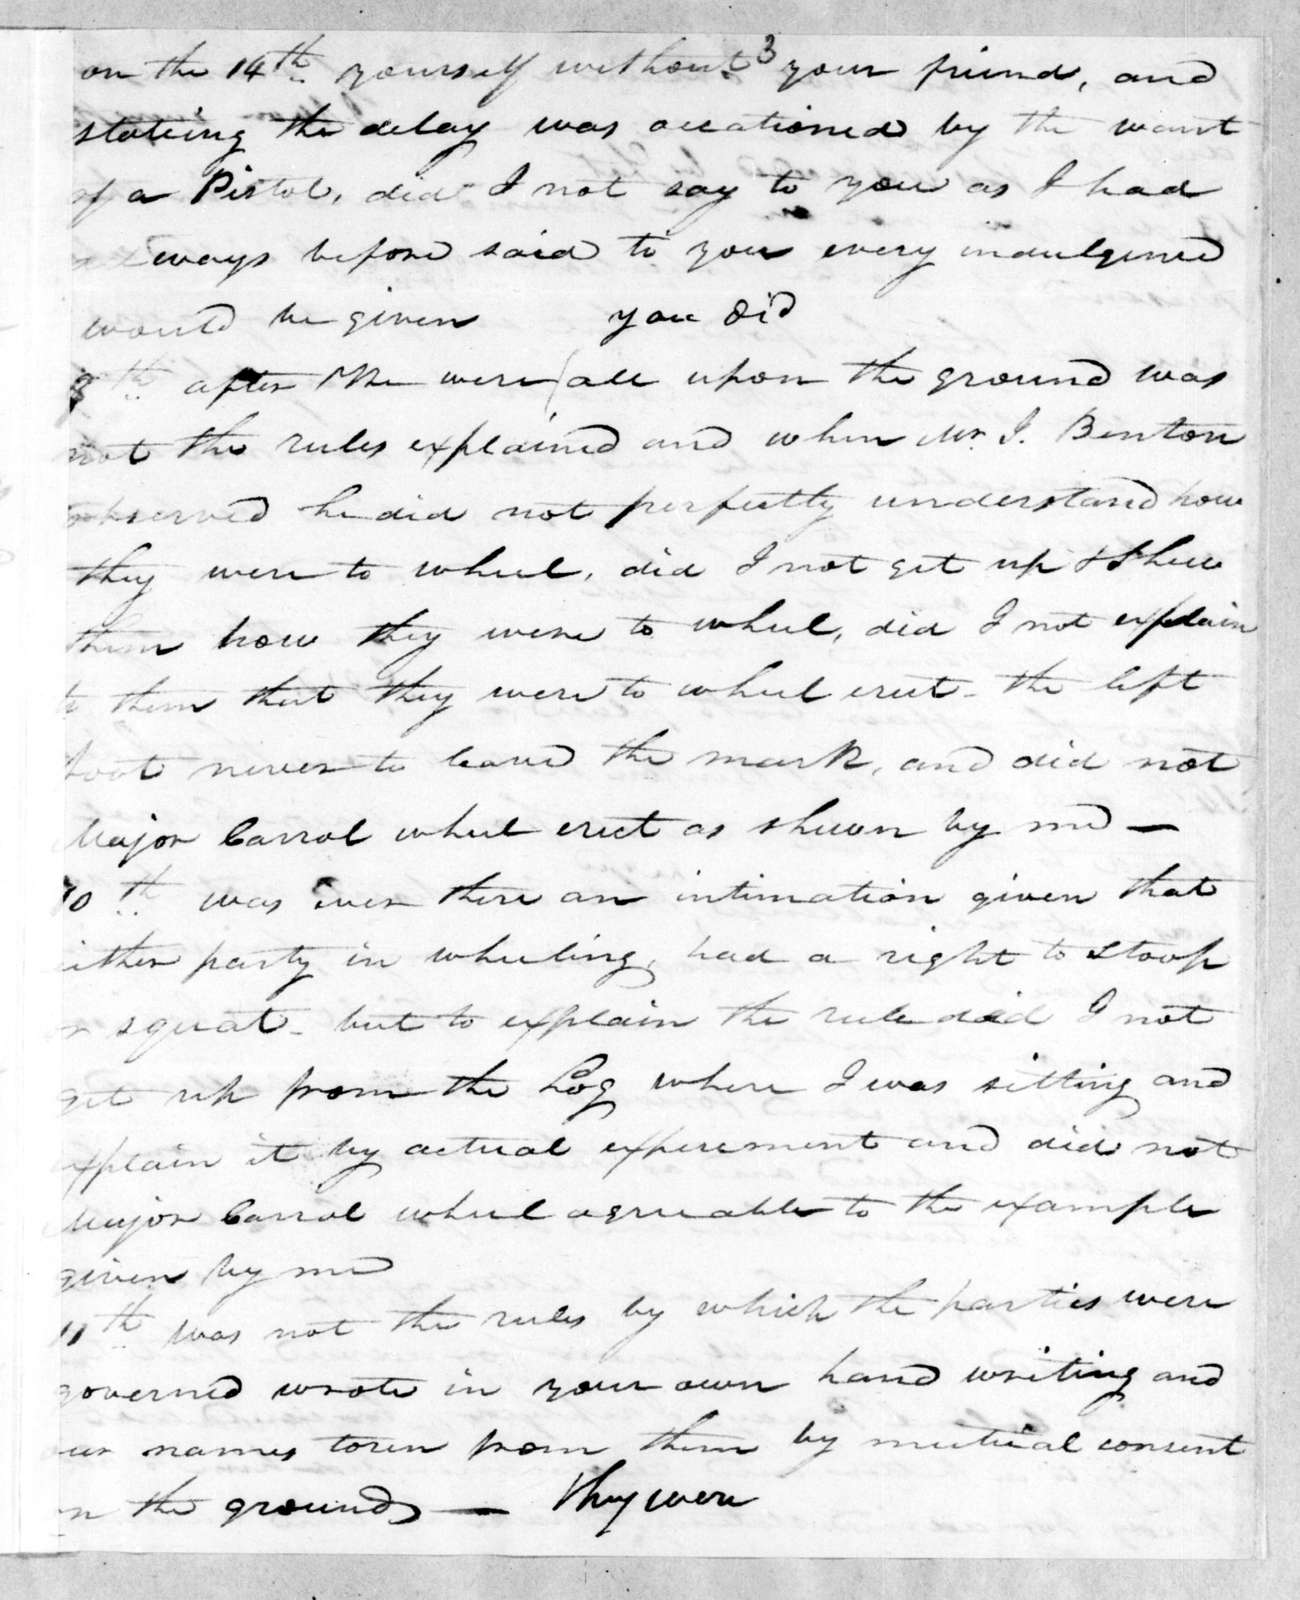 Andrew Jackson to John Armstrong, August 9, 1813